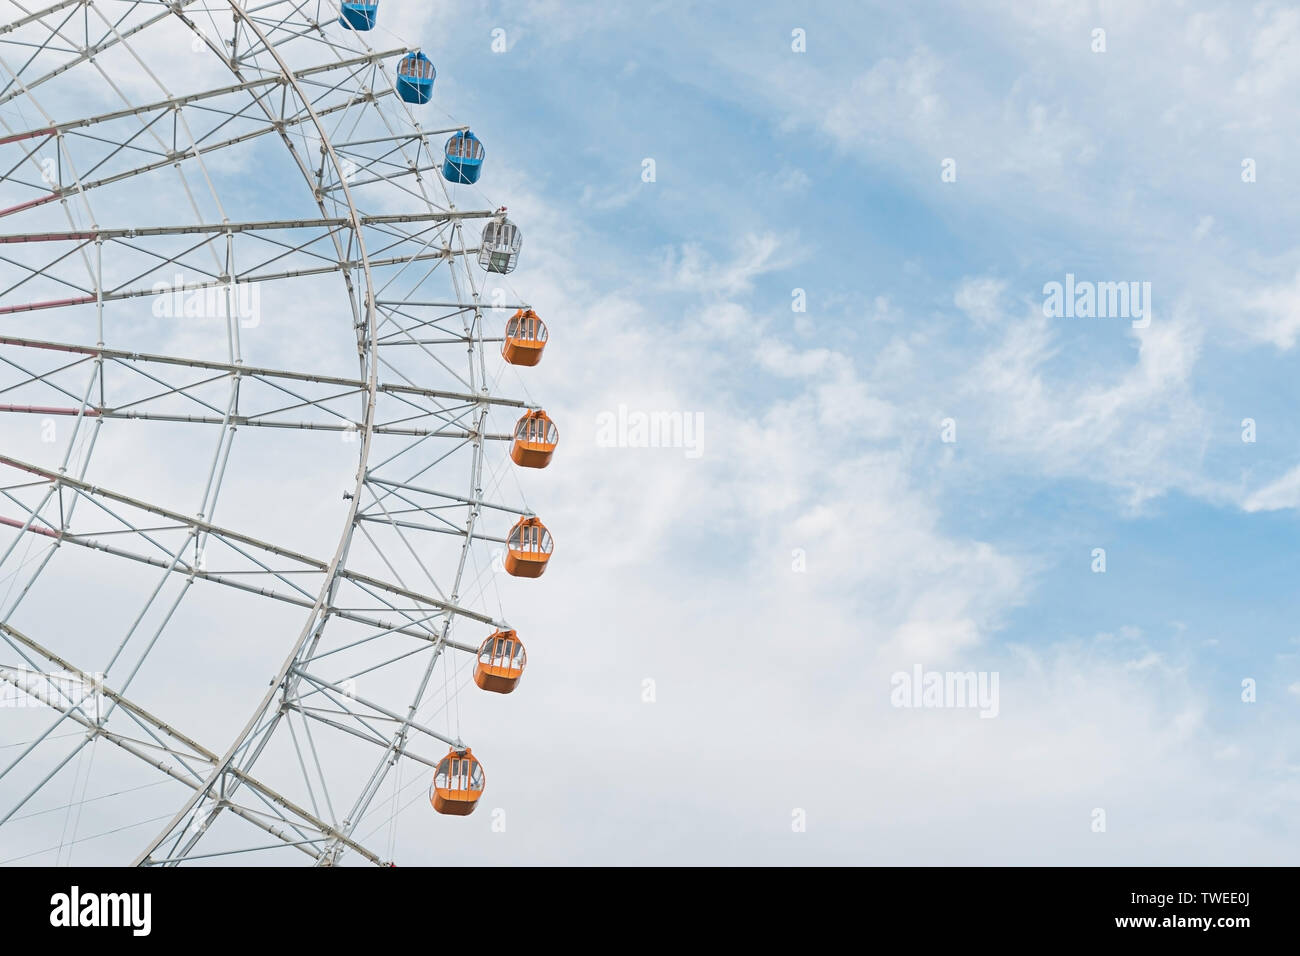 Half of the Ferris wheel against sky. - Stock Image